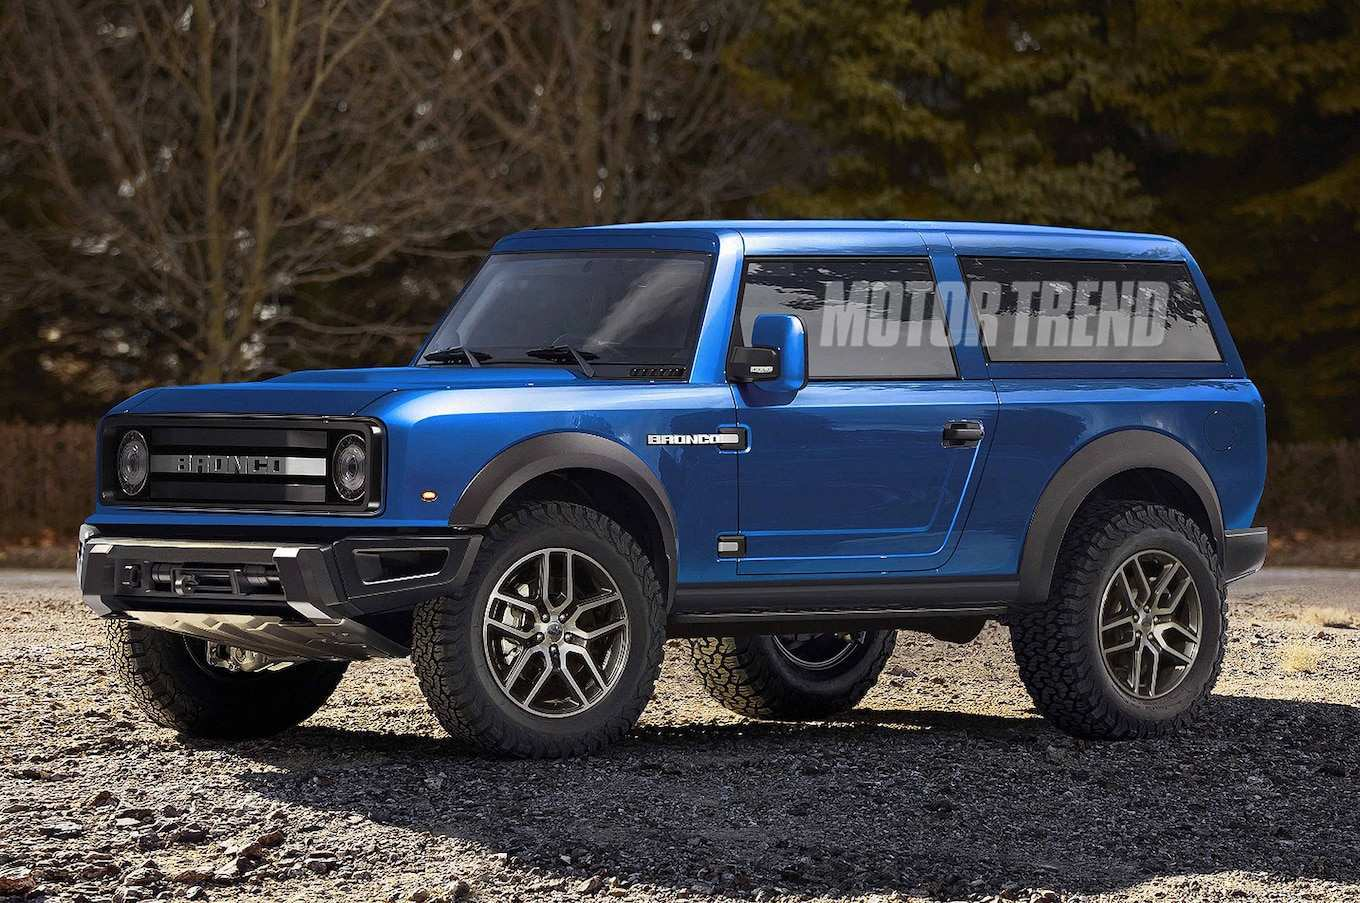 63 All New Toyota Bronco 2020 Picture for Toyota Bronco 2020